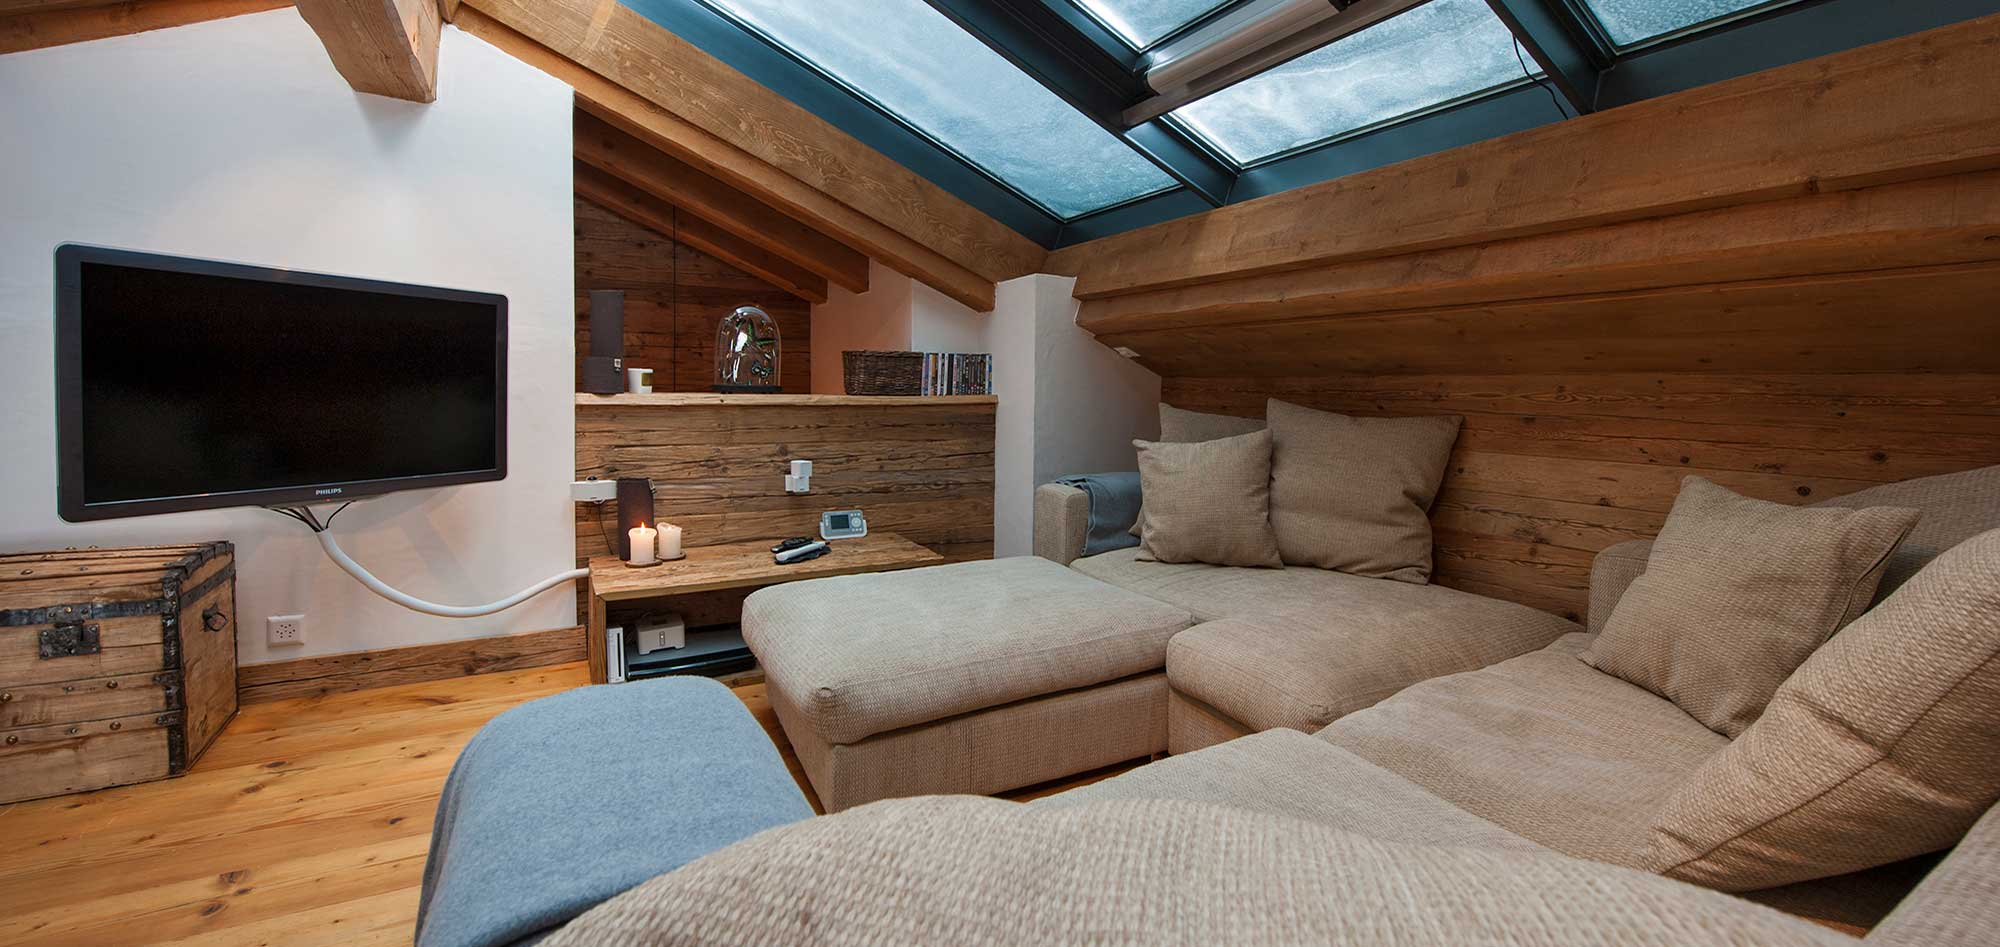 snowy roof windows above tv room sofa